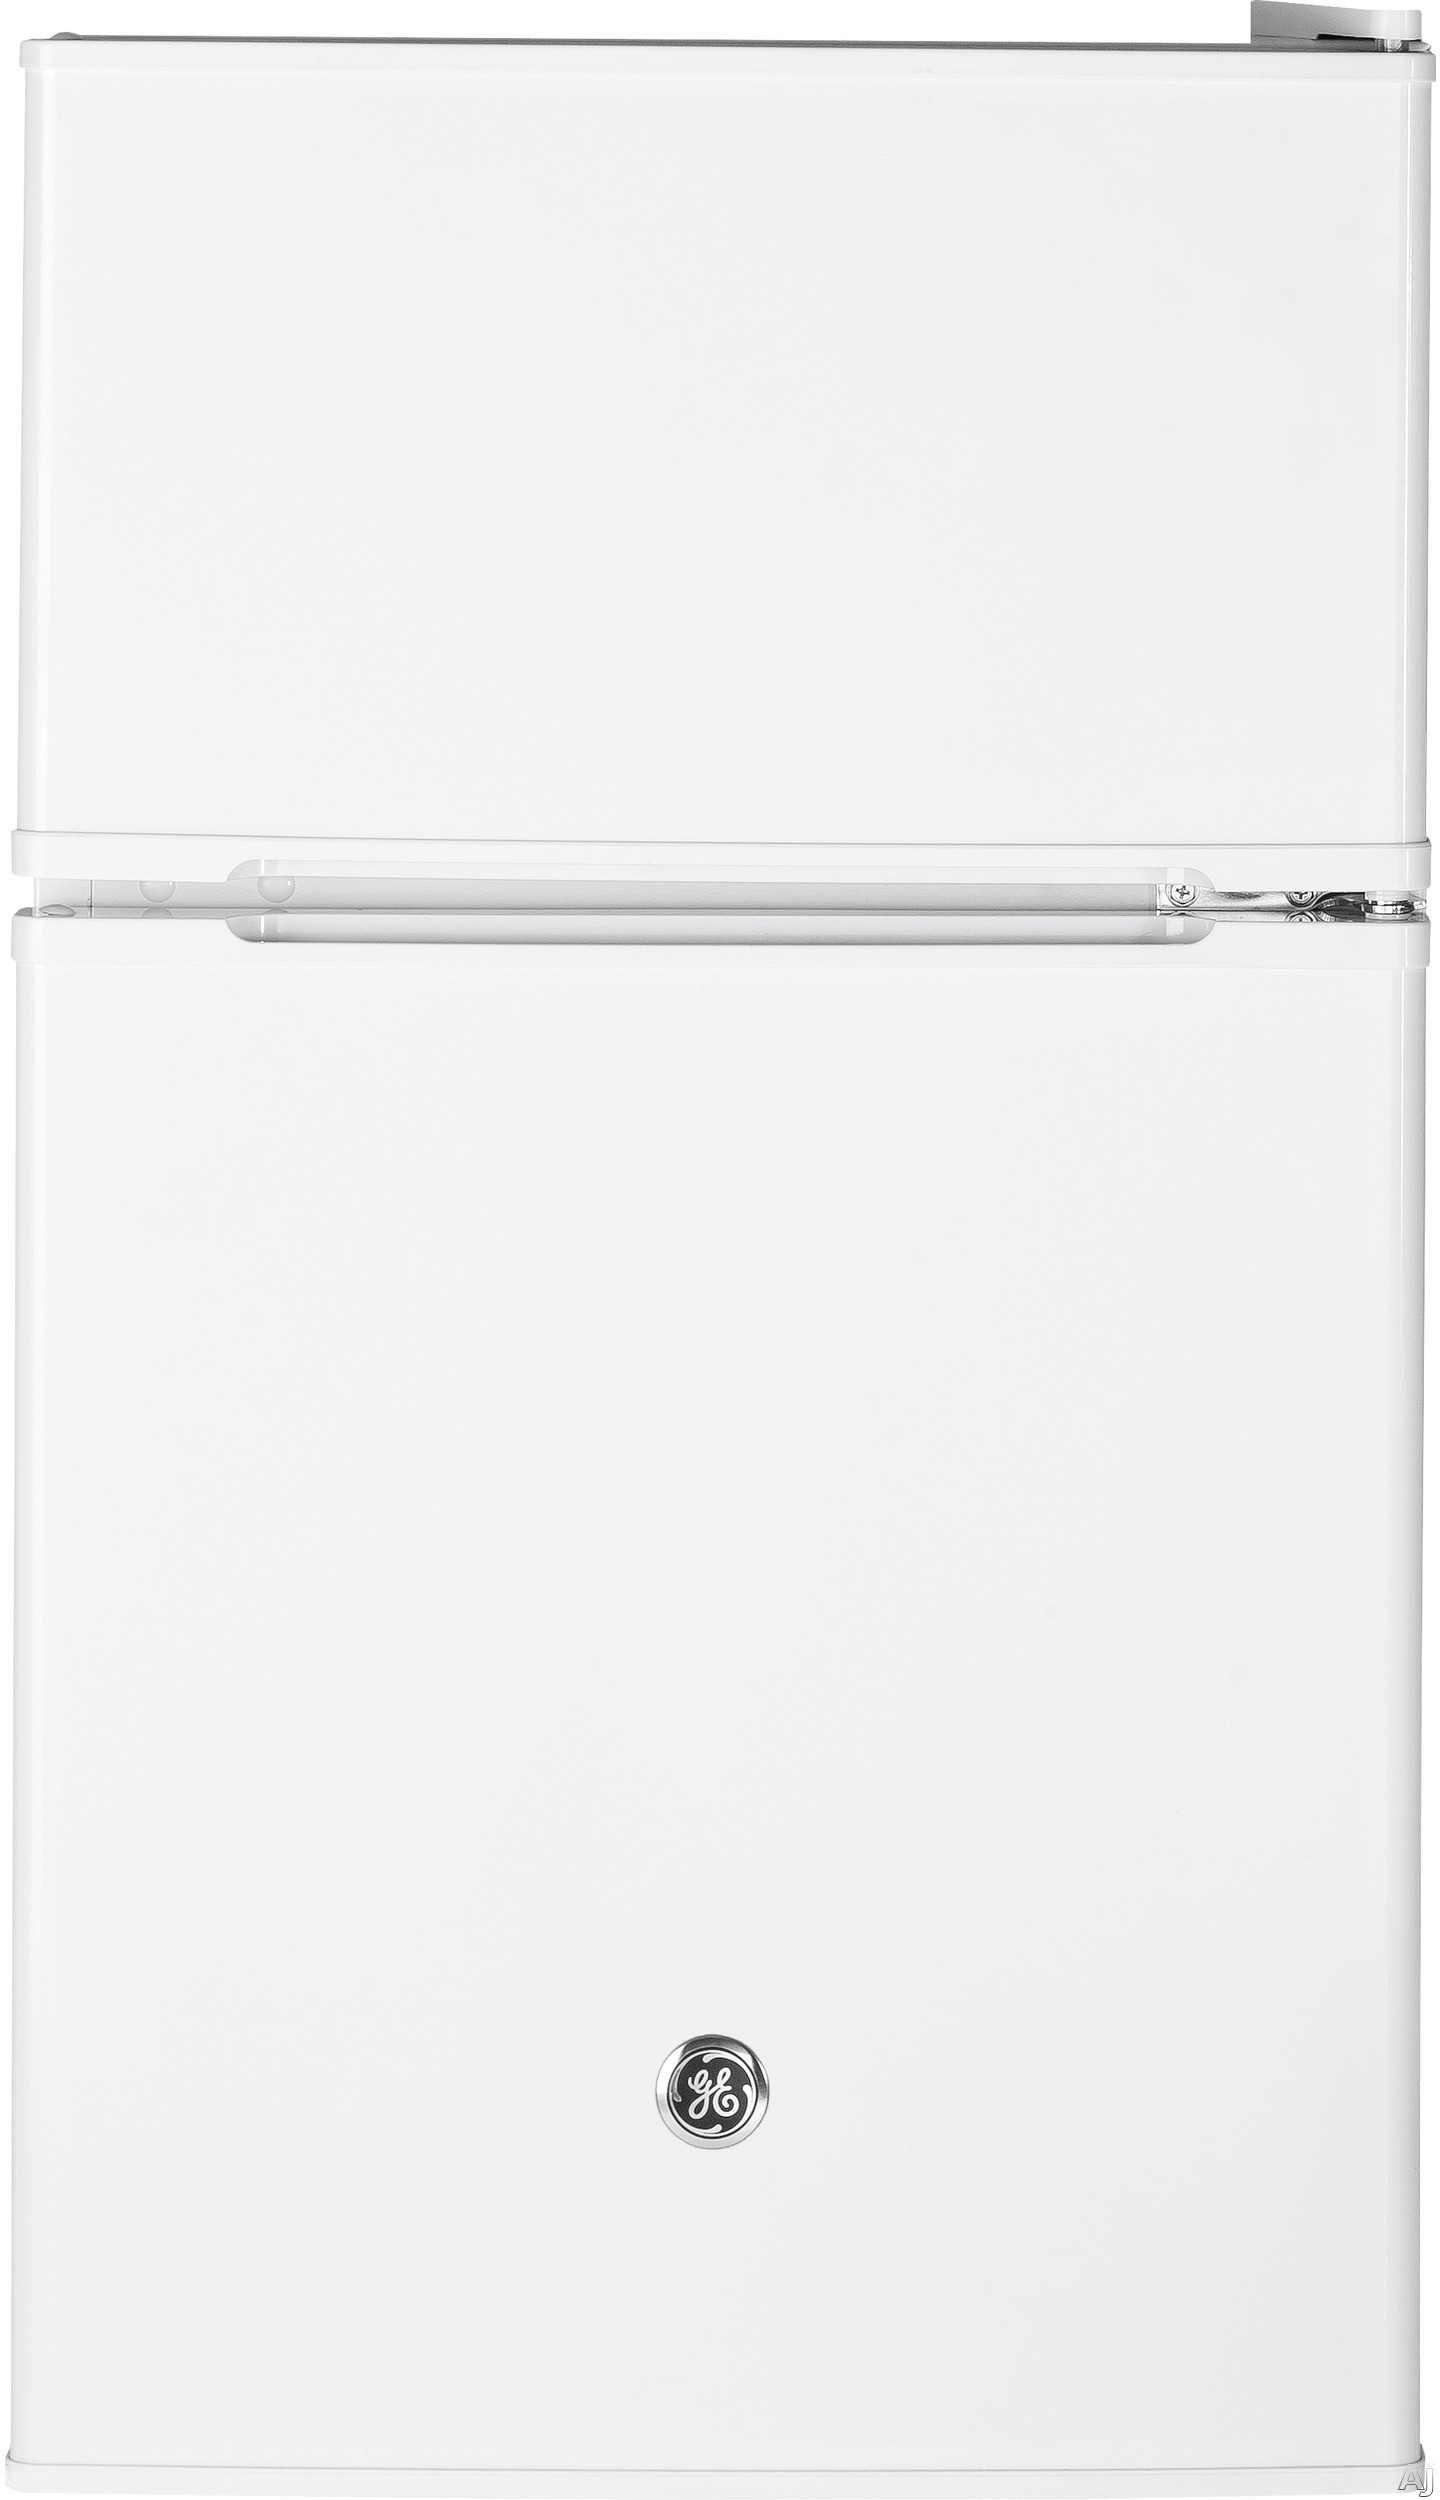 GE GDE03GGKWW 19 Inch Top Freezer Compact Refrigerator with 2 Glass Shelves, Storage Drawer, 2 Door Bins, Beverage Can Door Bin, Freezer Door Bin, ENERGY STAR and Mini Ice Cube Tray: White